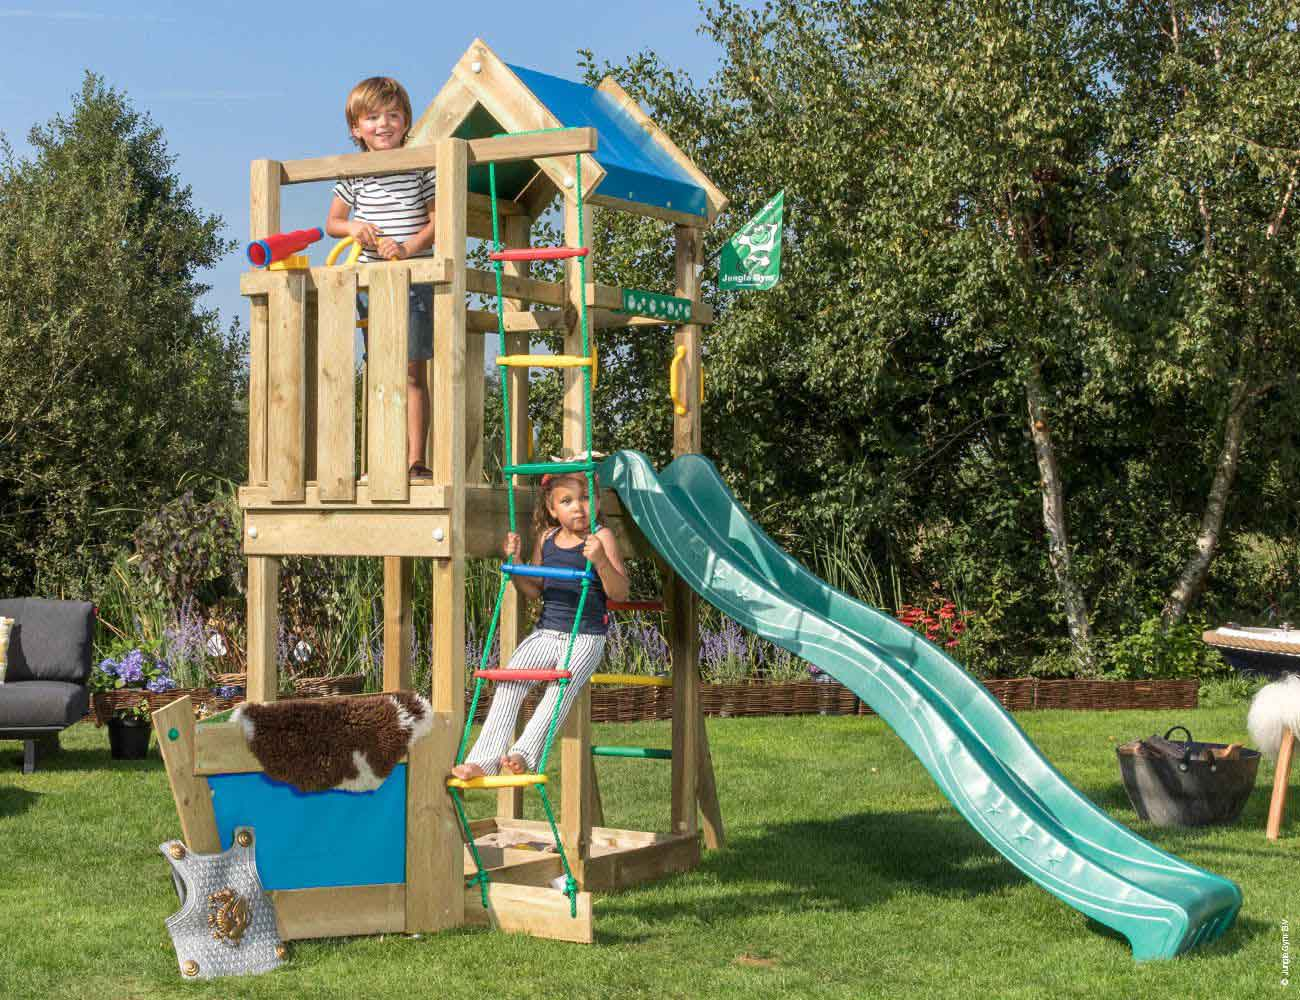 Torretta gioco Viking-scivolo_mybricoshop-jungle-gym-